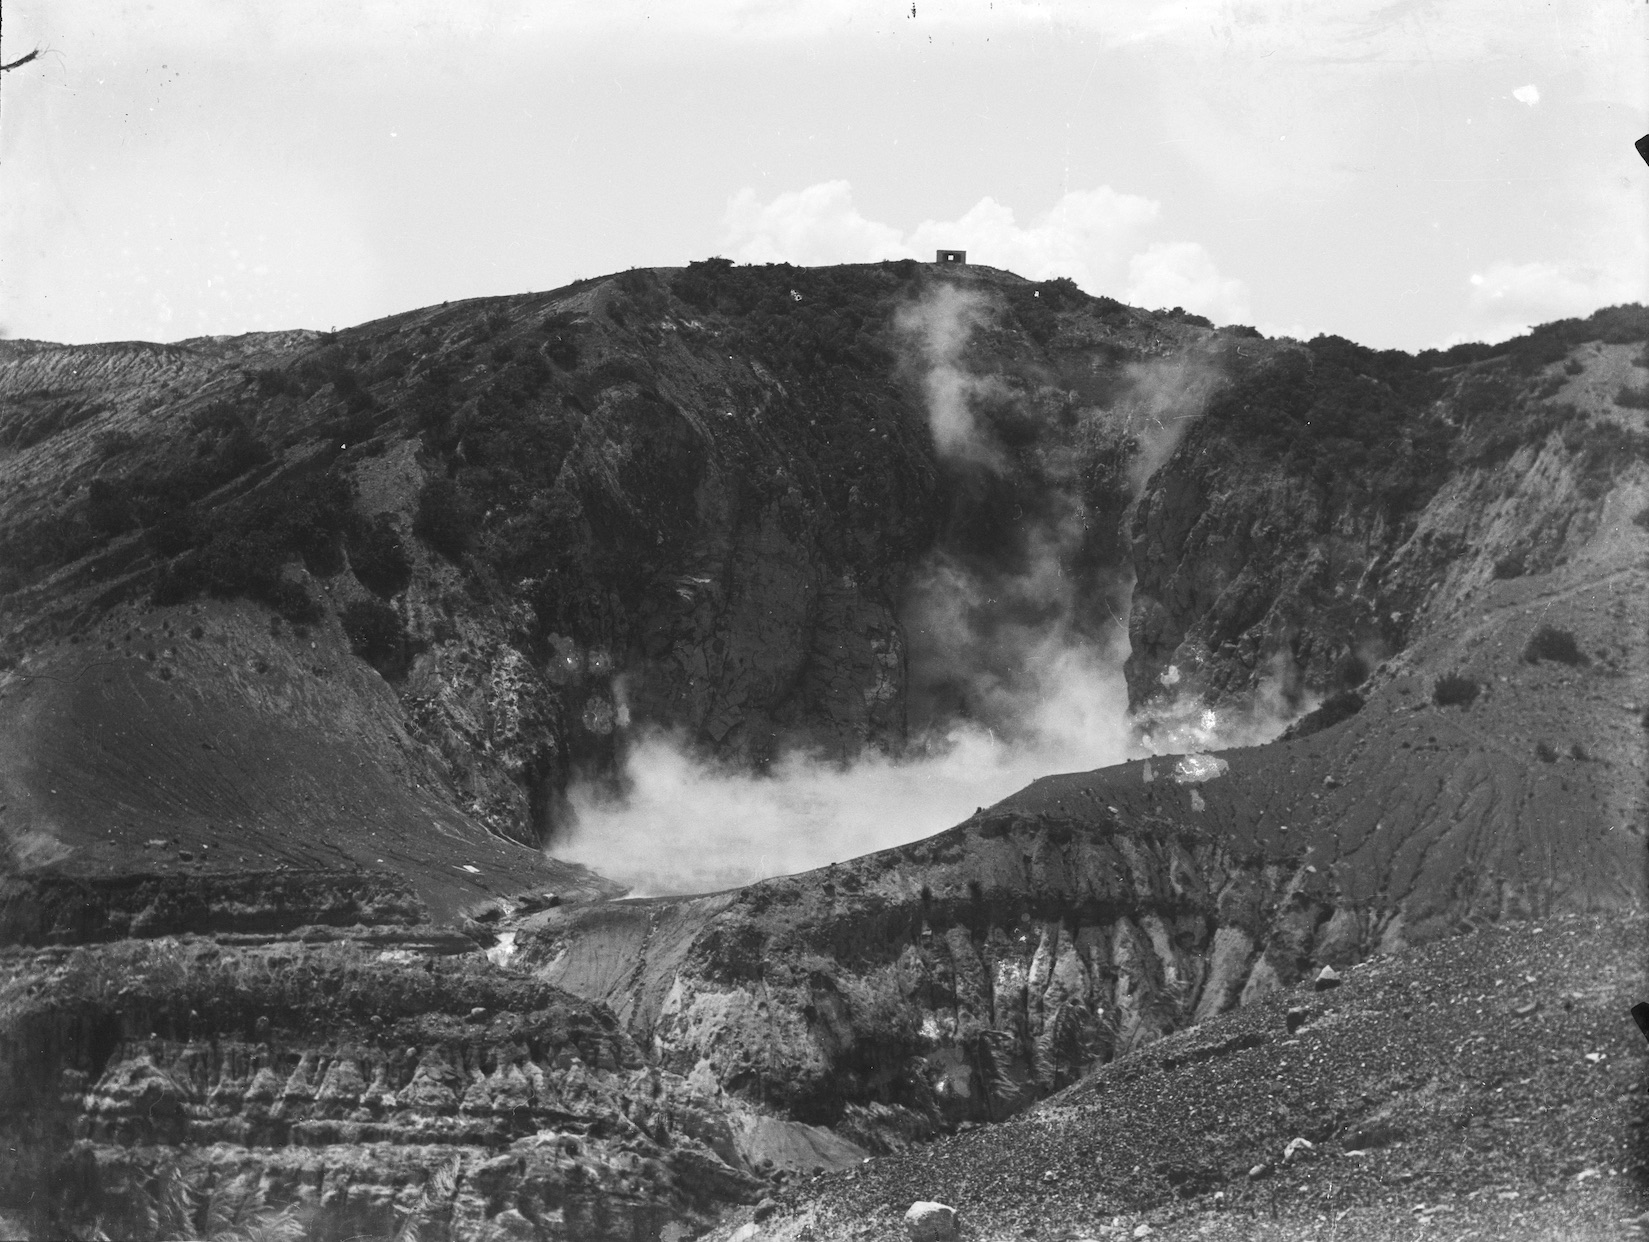 Suspect this is the Waimangu Volcanic Valley, North Island, New Zealand, circa 1907-1911. Lemuel Lyes Collection.